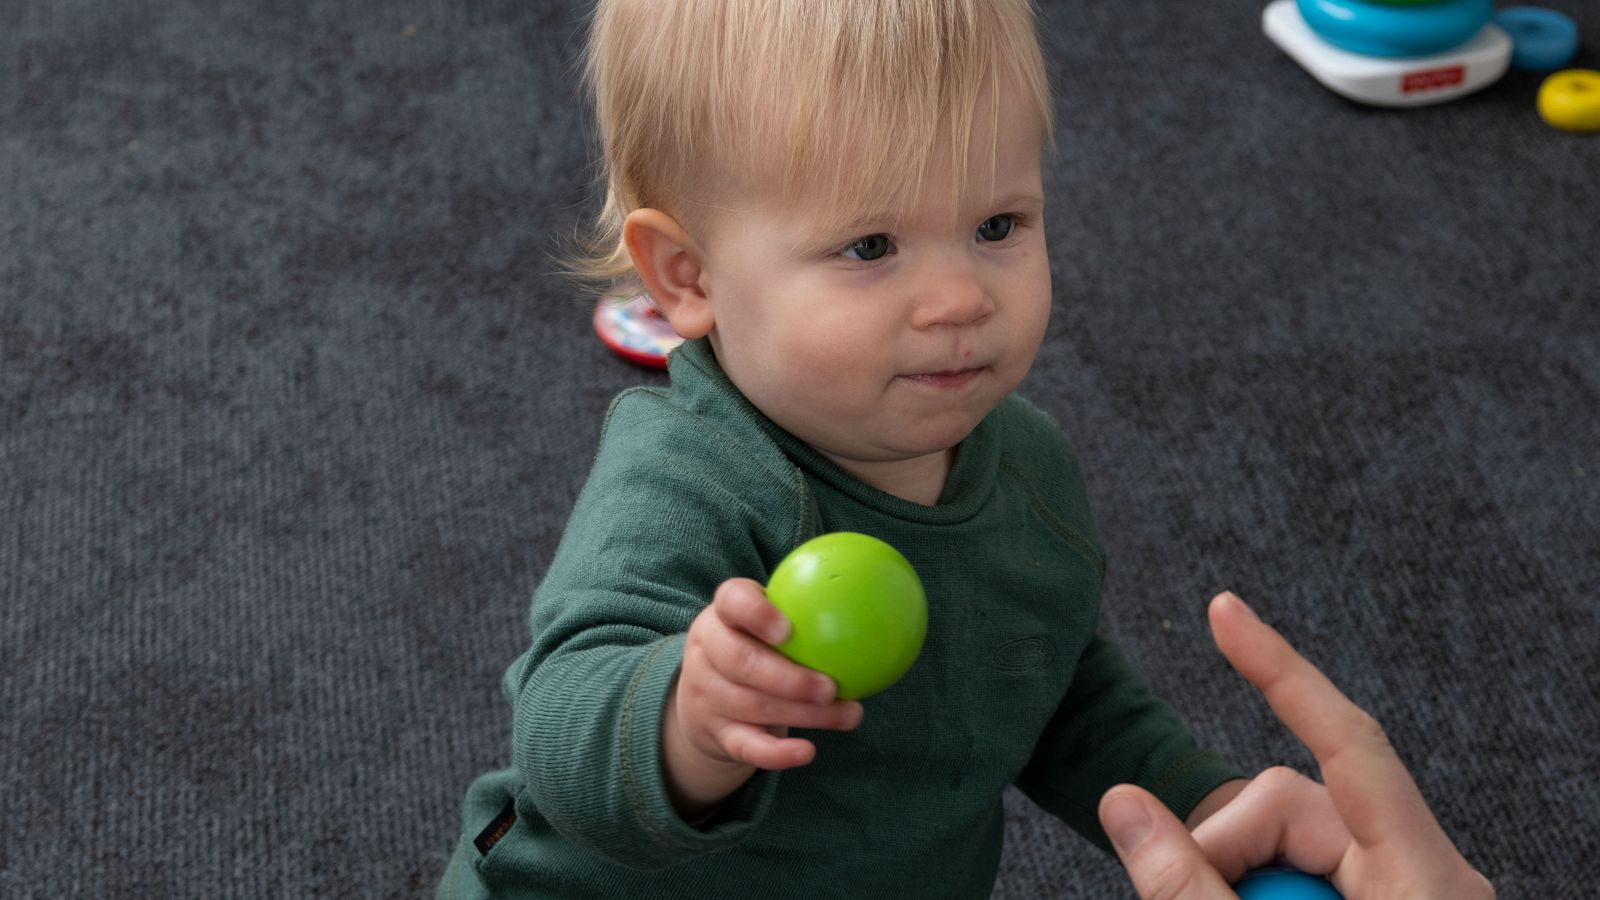 A child passes a green toy ball to an instructor.